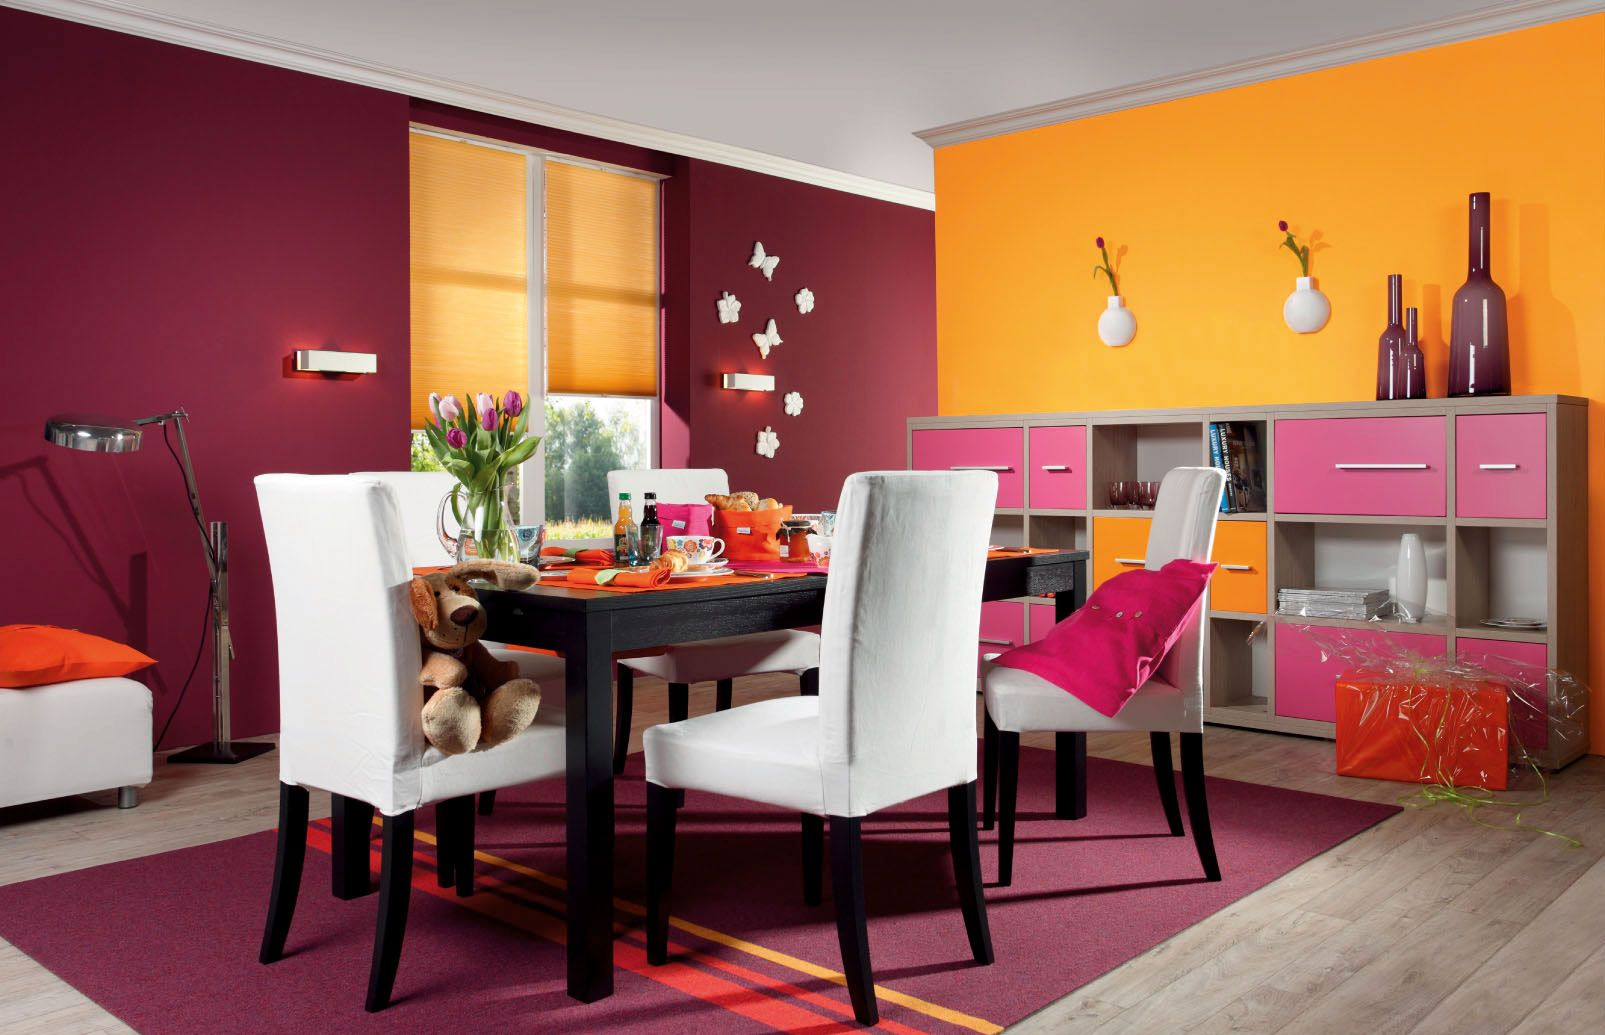 Schlafzimmer Orange Alpina Wandfarbe Farbrezepte Happy Weekend 2 5 L In 2019